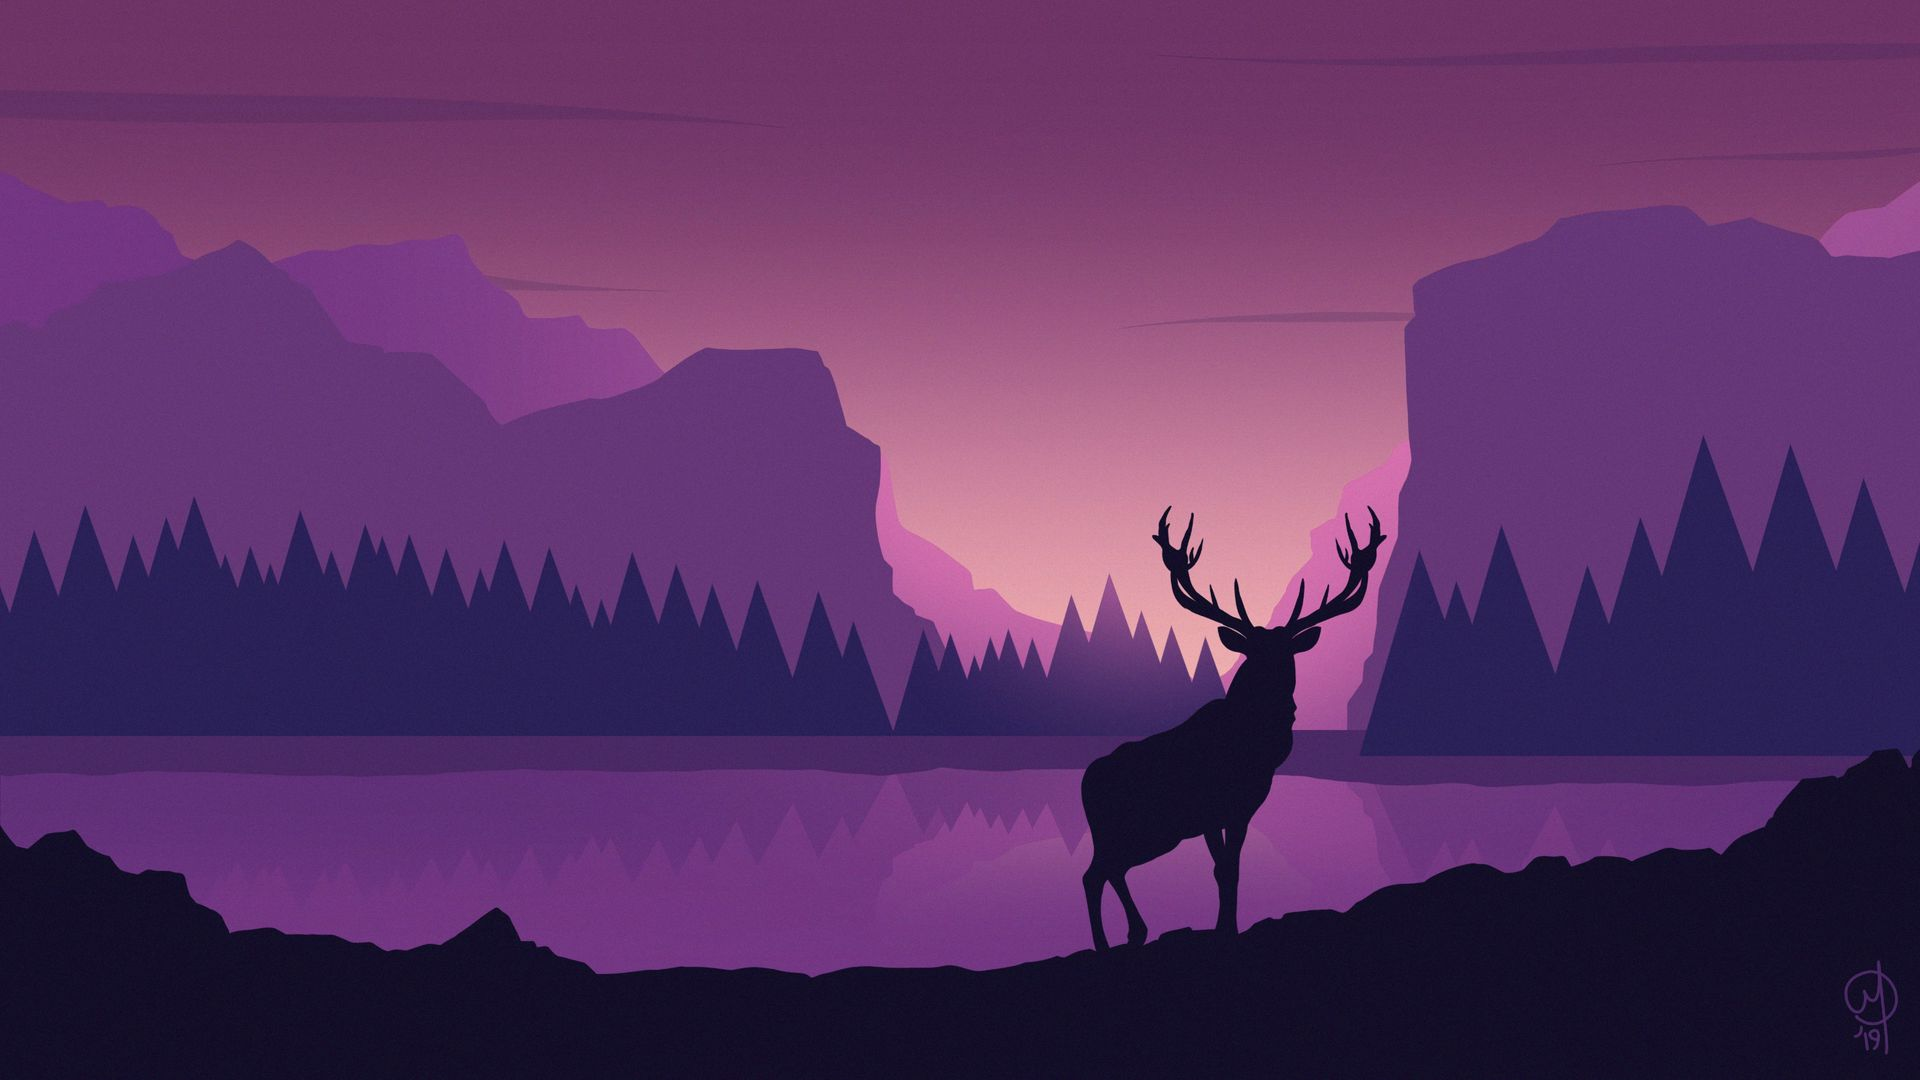 Download Wallpaper 1920x1080 Deer, Art, Vector, Mountains